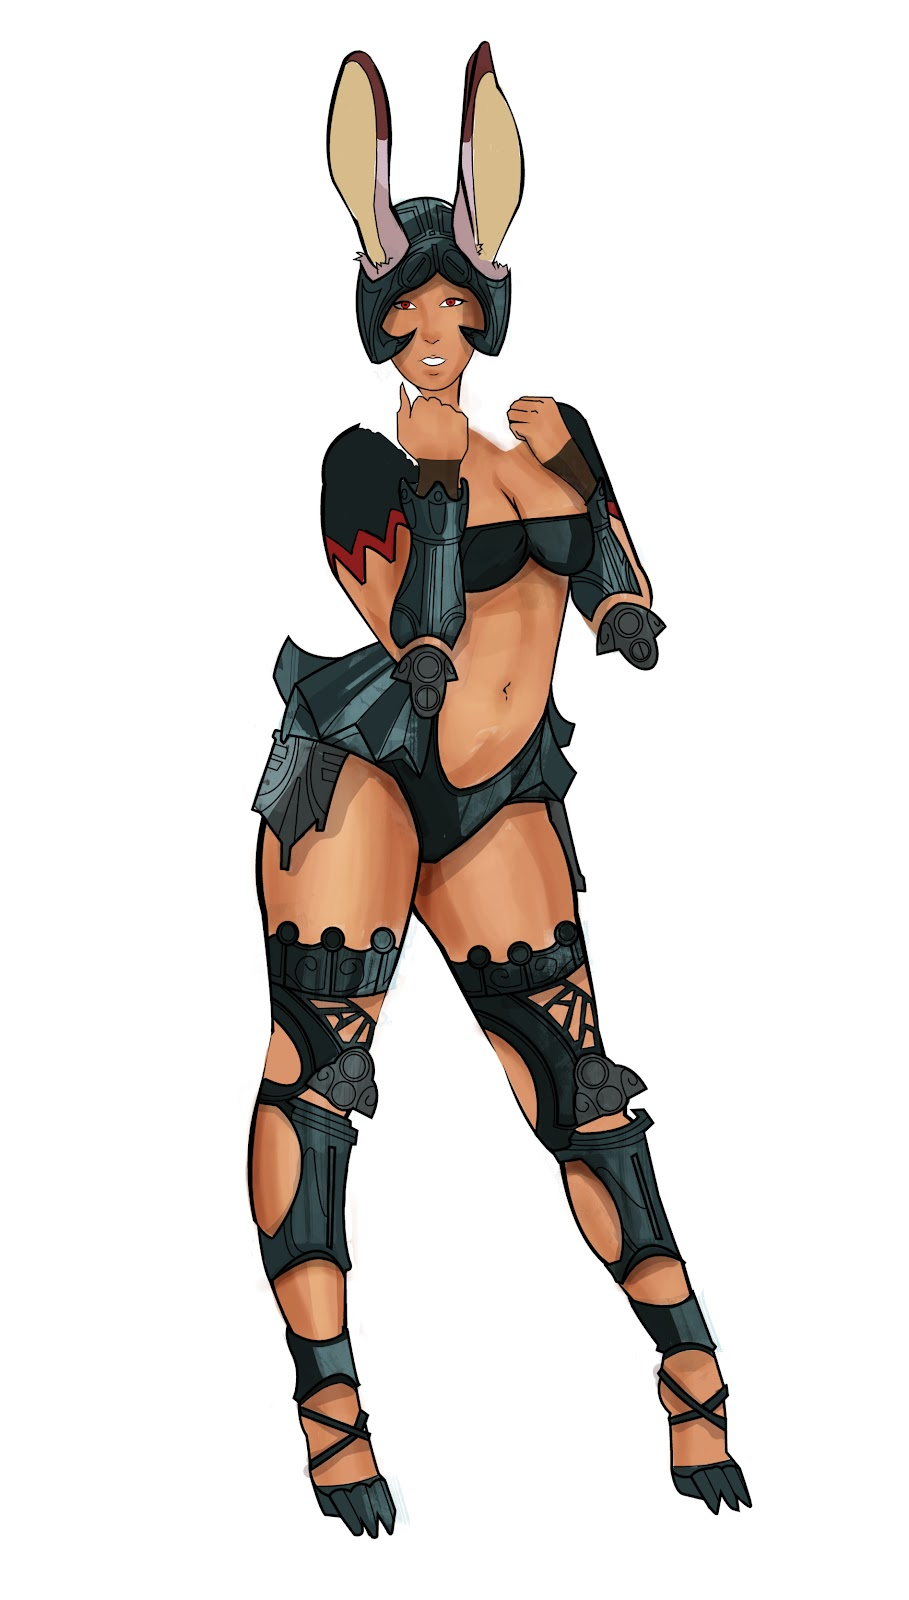 Fran final fantasy 12 adult art